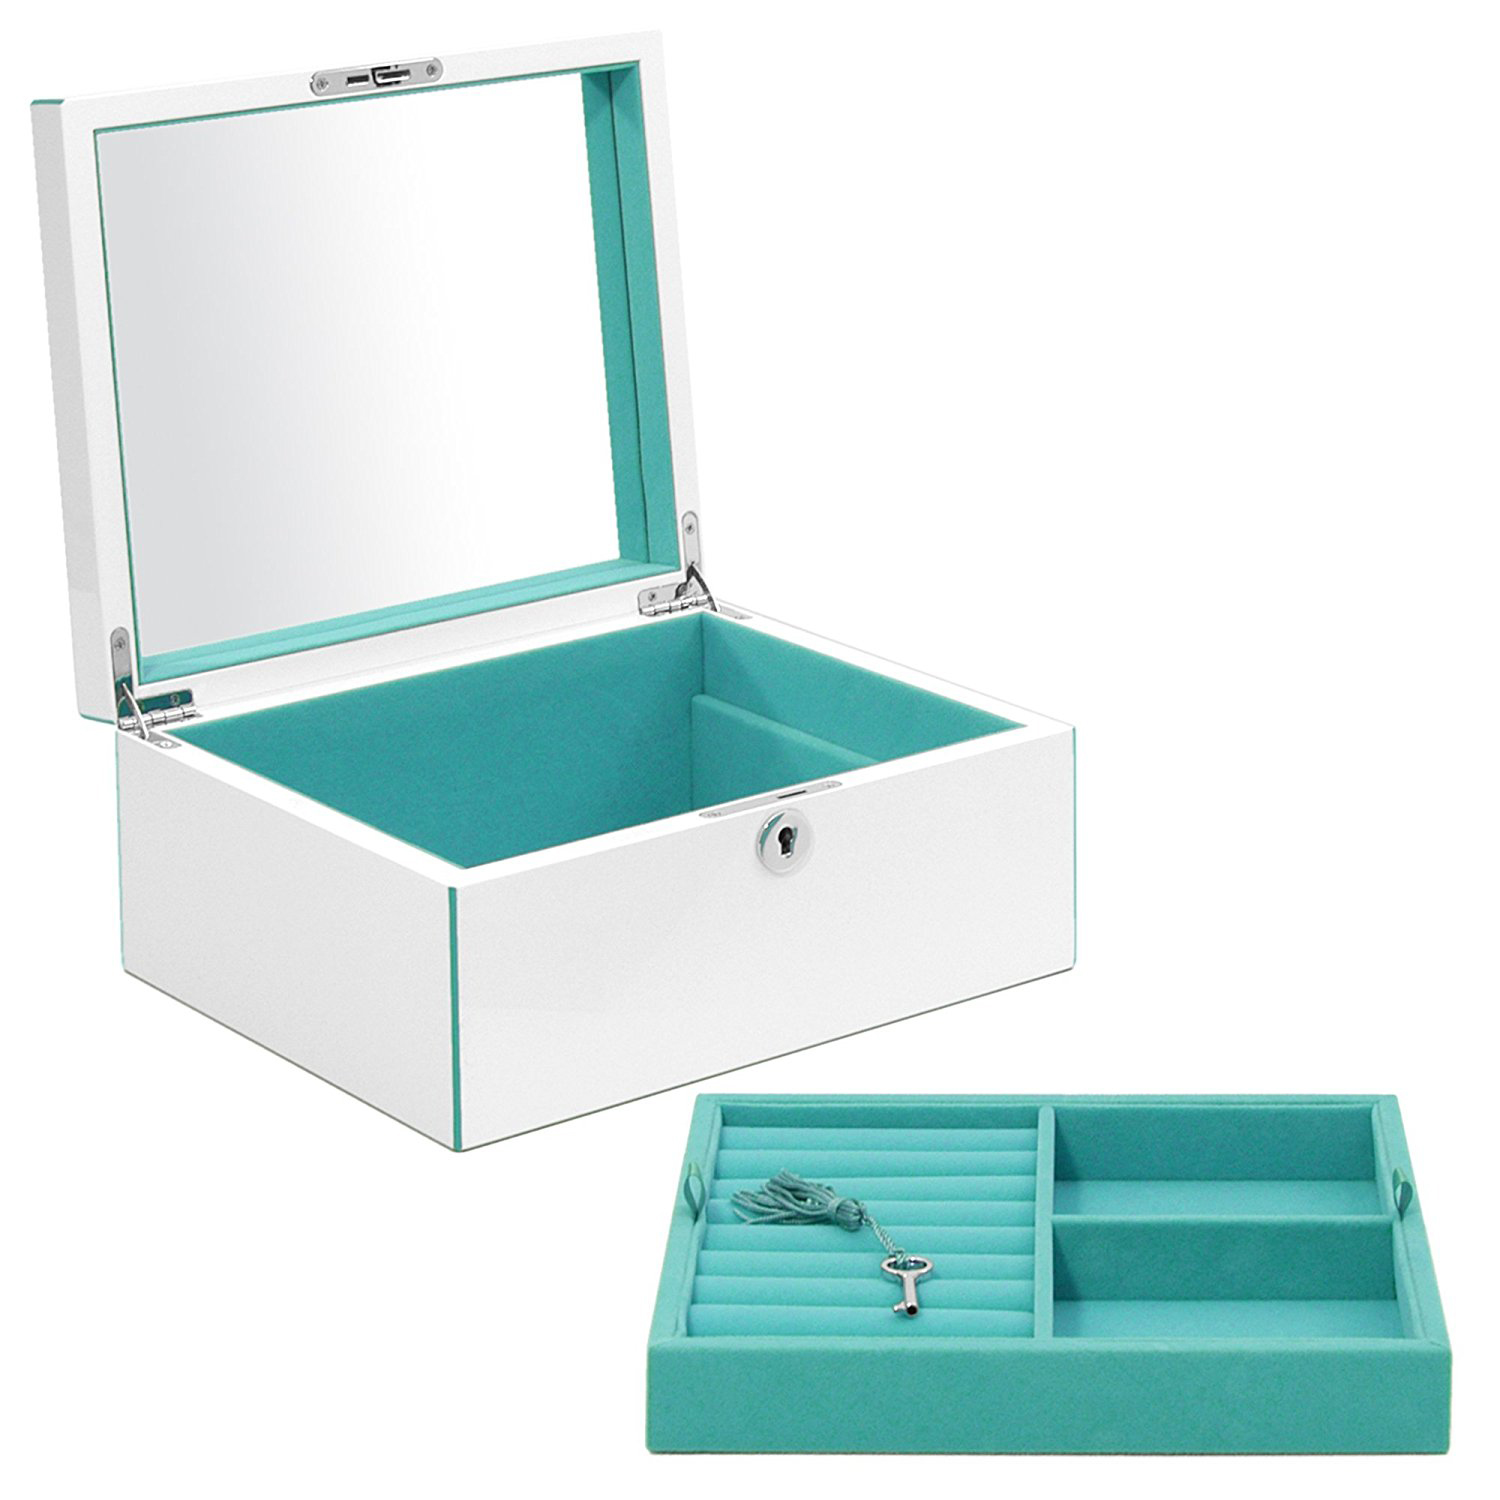 Elegant Silver Large Mirrored Jewelry Box With Teal Interior